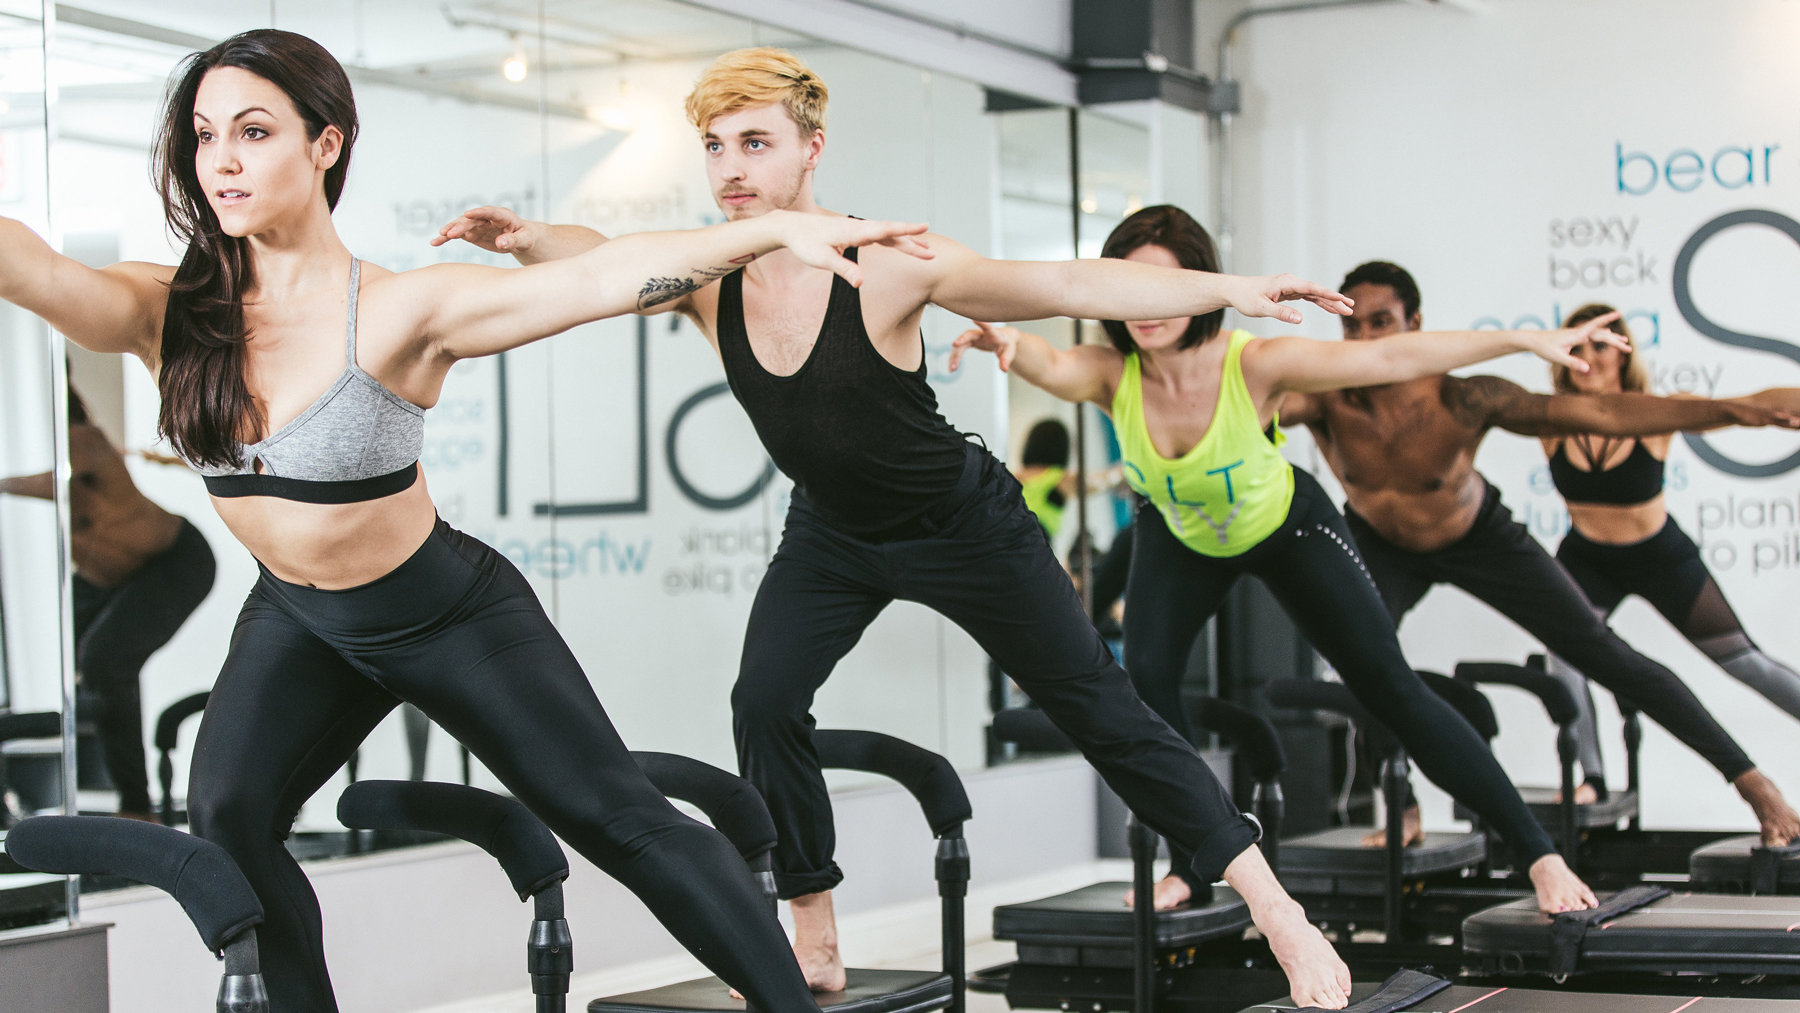 Editor Tested: The Workout That Completely Transformed My Abs